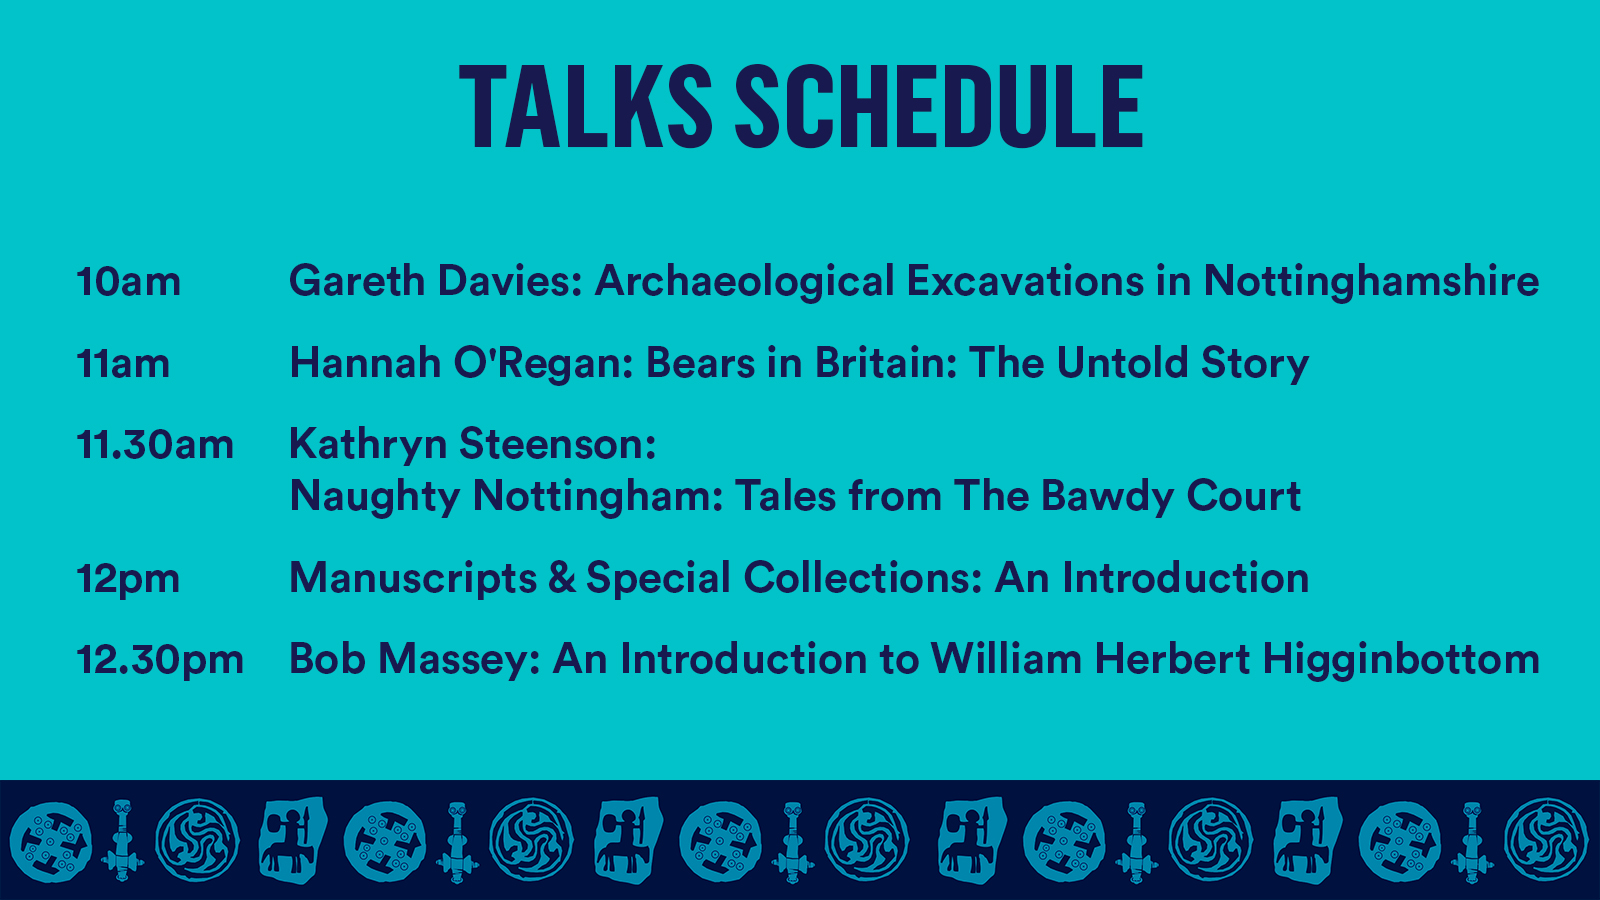 Schedule of talks outlined